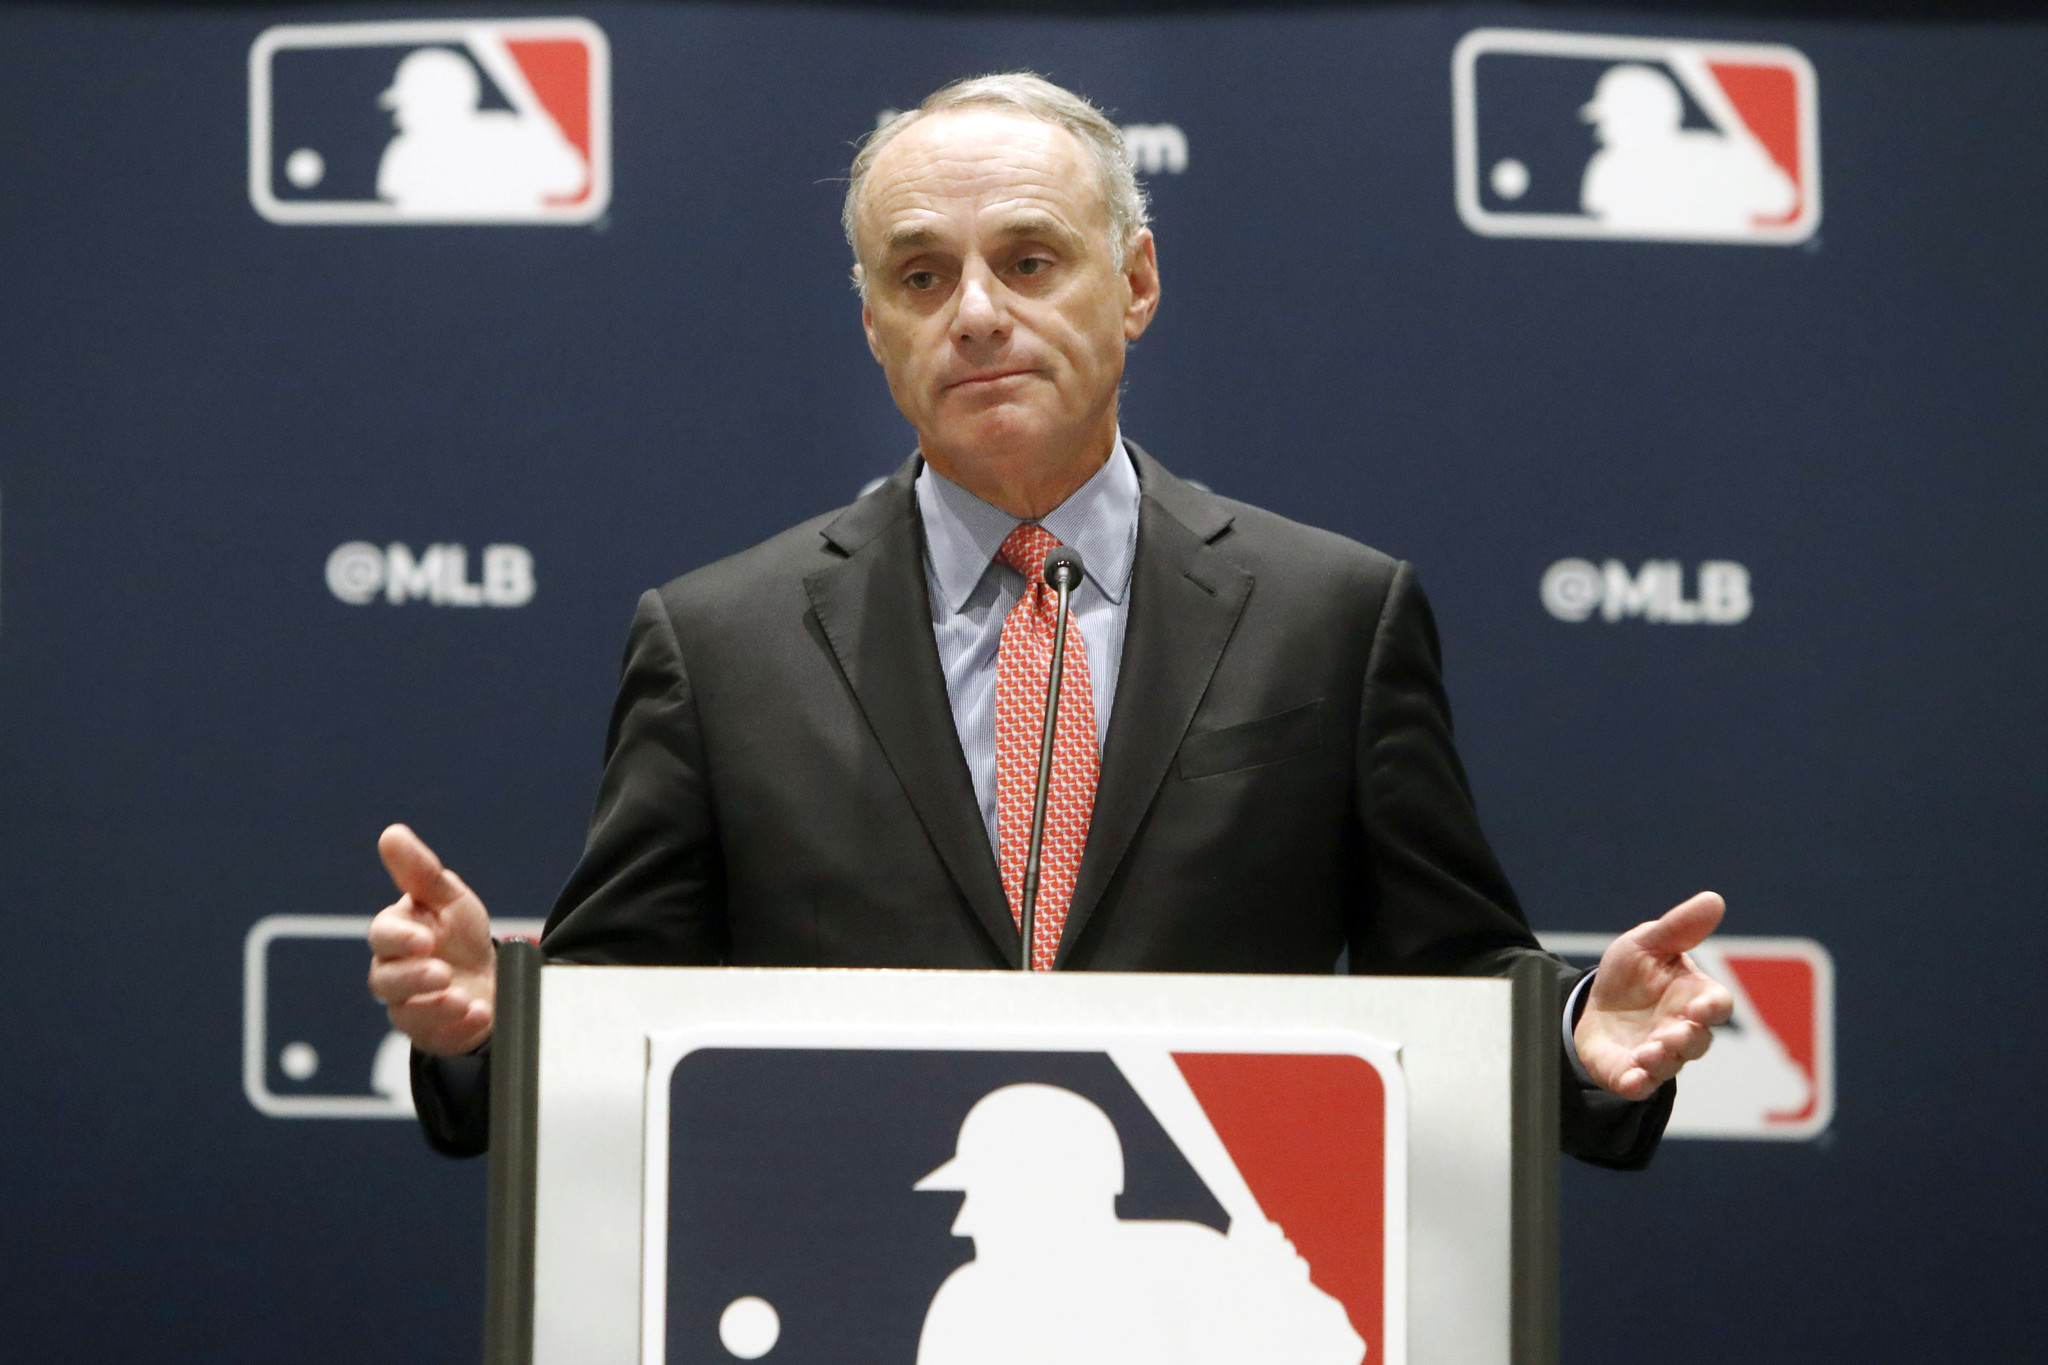 Rob Manfred has a credibility problem